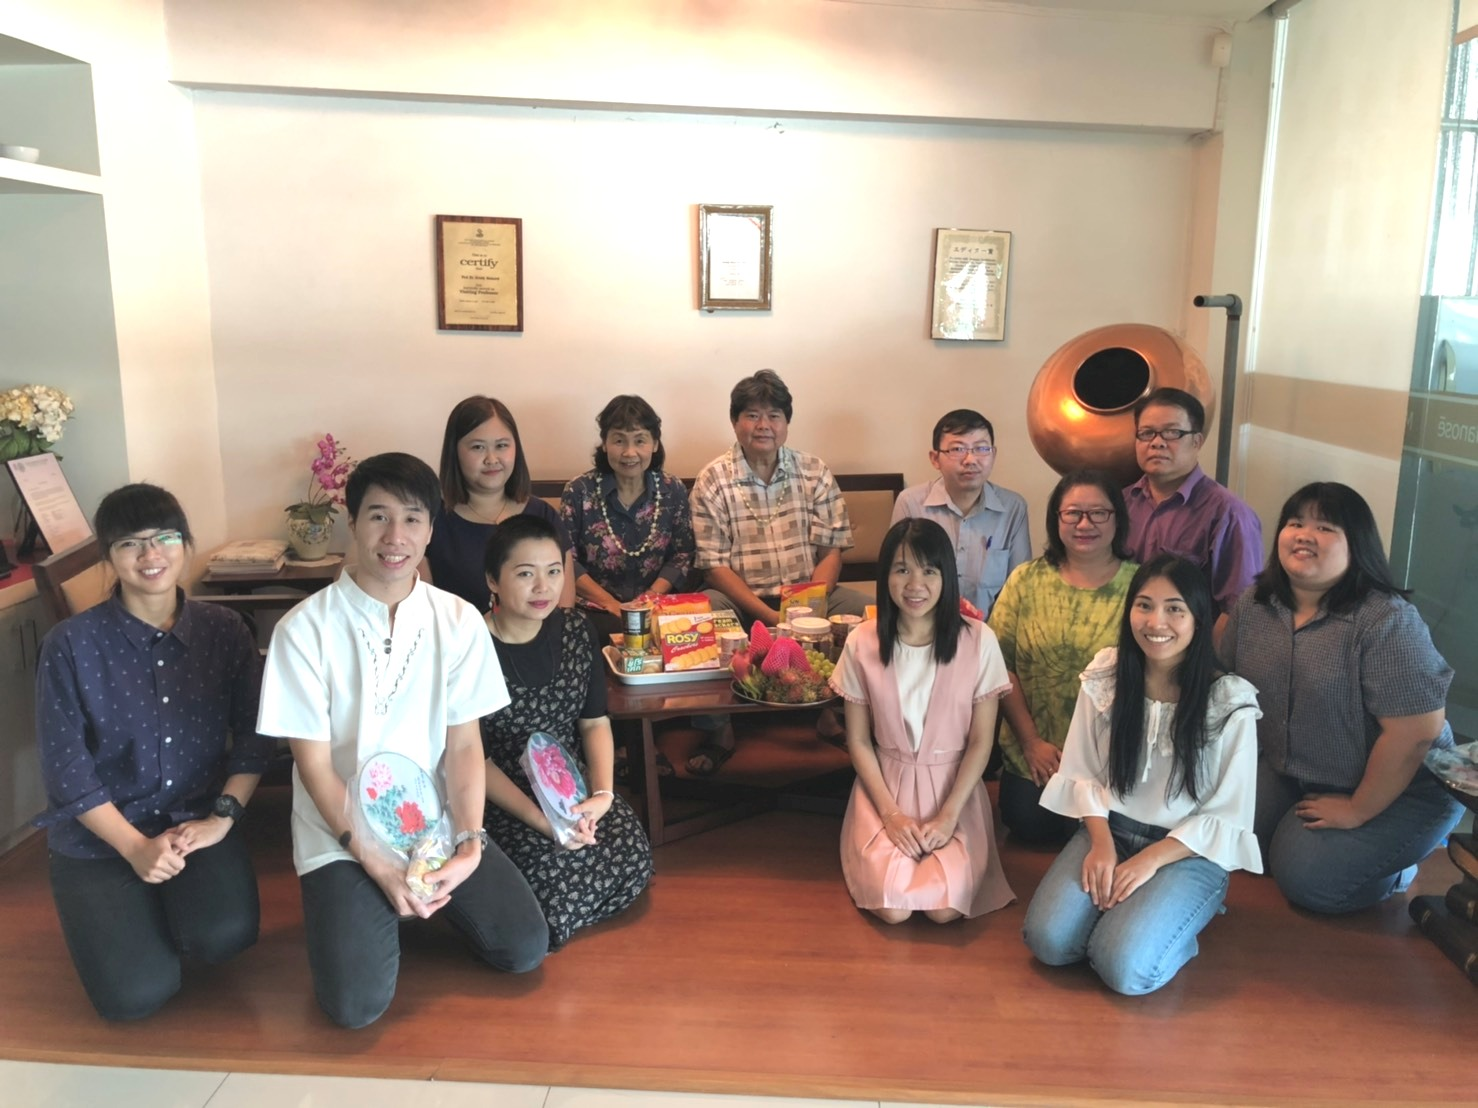 Researchers, staffs, and the former Ph.D.student have paid respect to the board of Manose Health and Beauty Research Center on the occasion of Thai New Year (Songkran Festival)